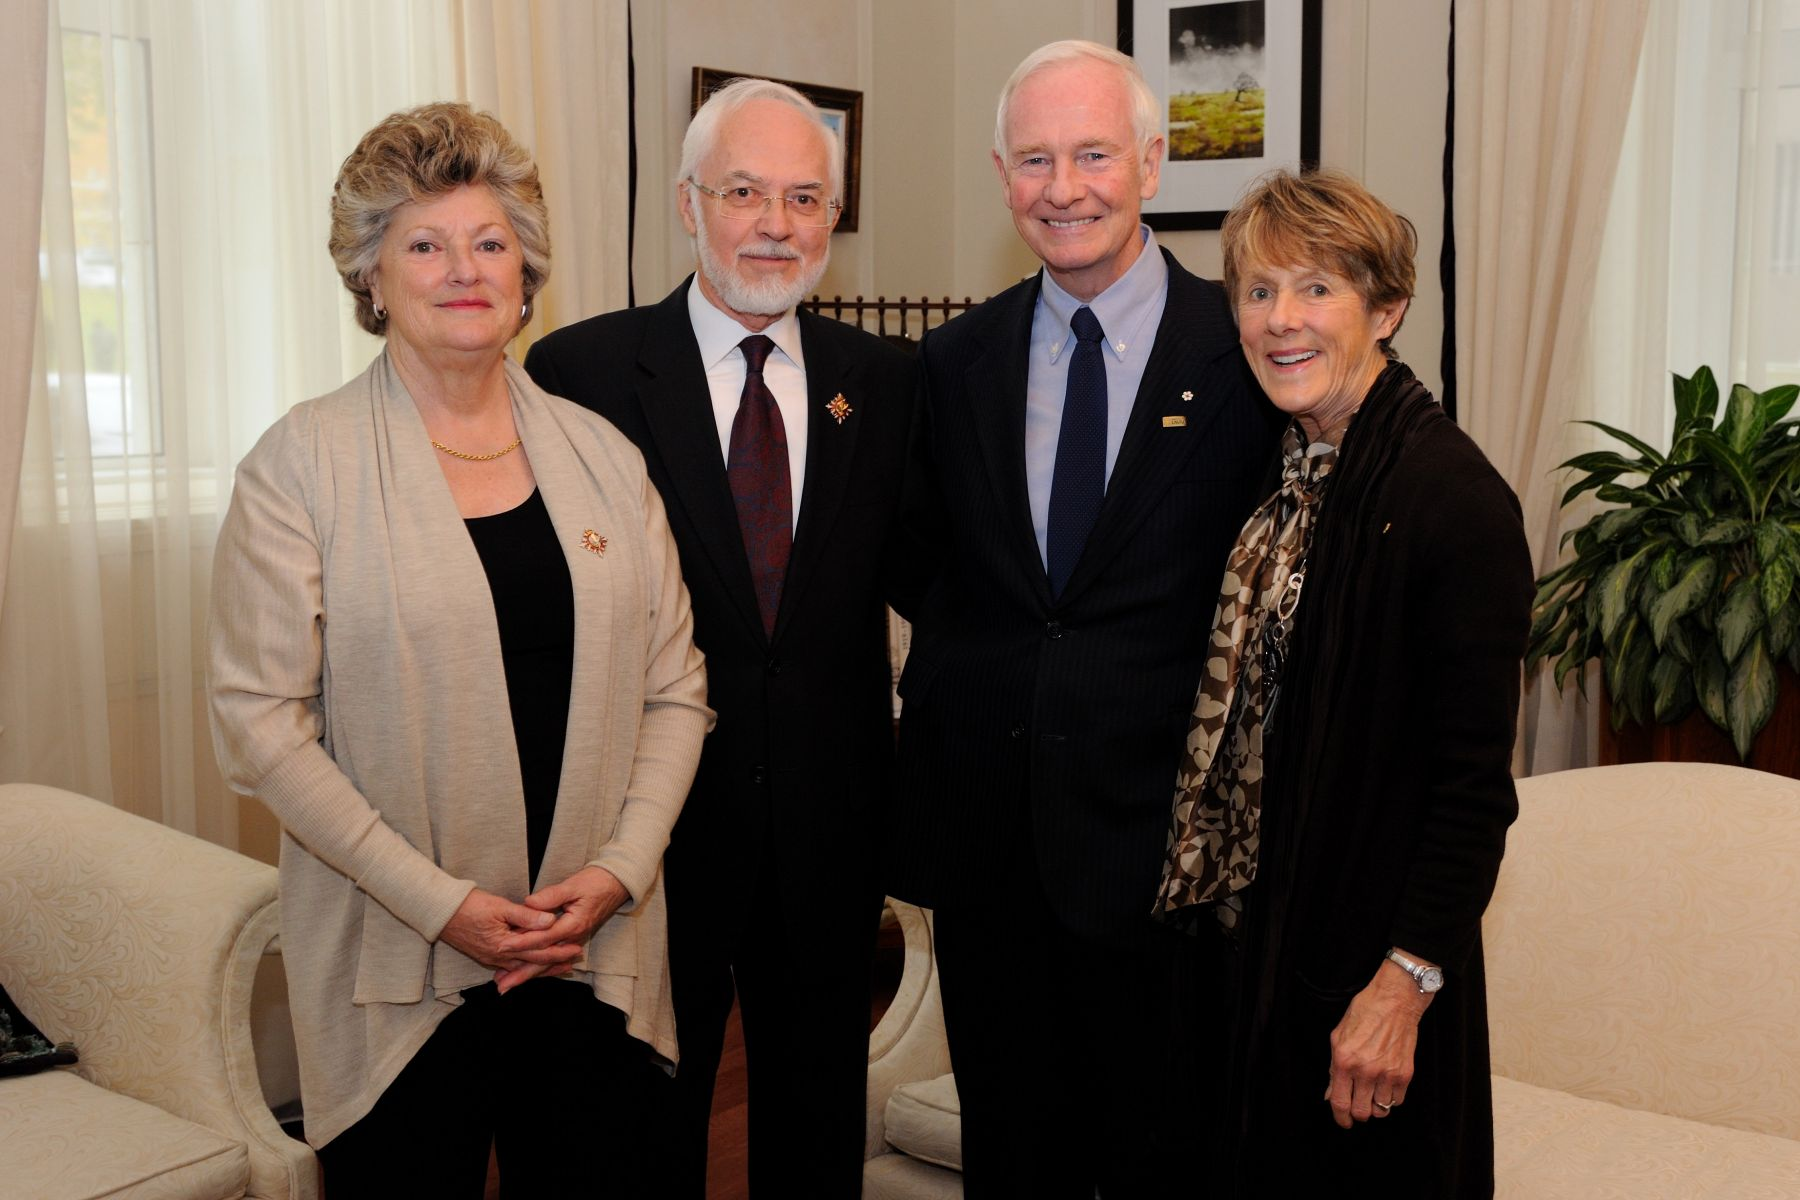 Their Excellencies met with Their Honours, the Honourable Pierre Duchesne, Lieutenant Governor of Quebec, and his wife Mrs. Ginette Lamoureux.